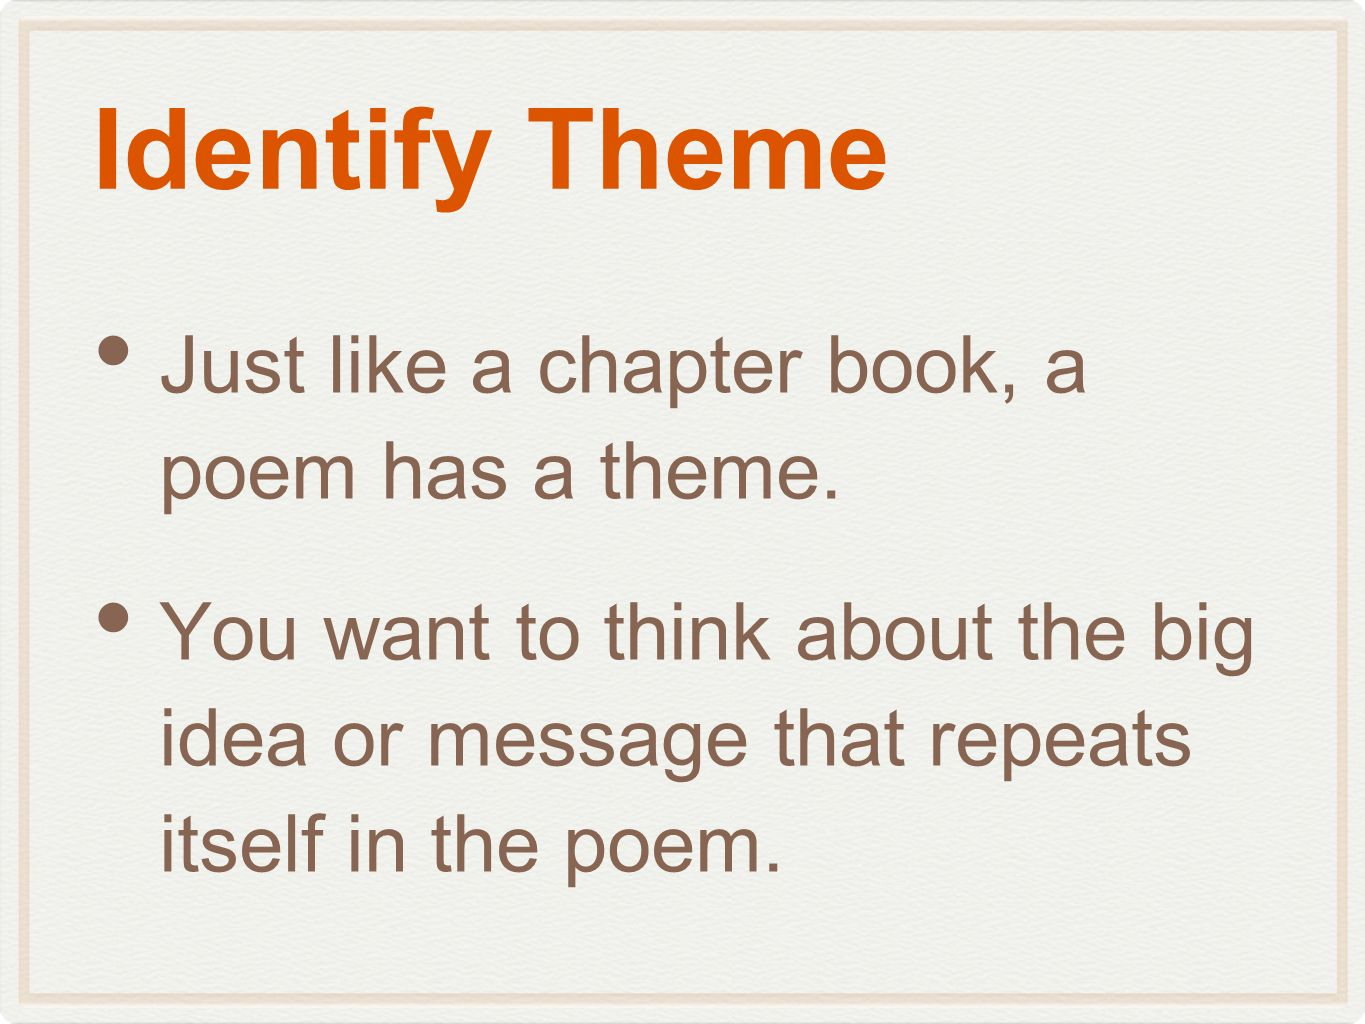 Identify Theme Just like a chapter book, a poem has a theme.